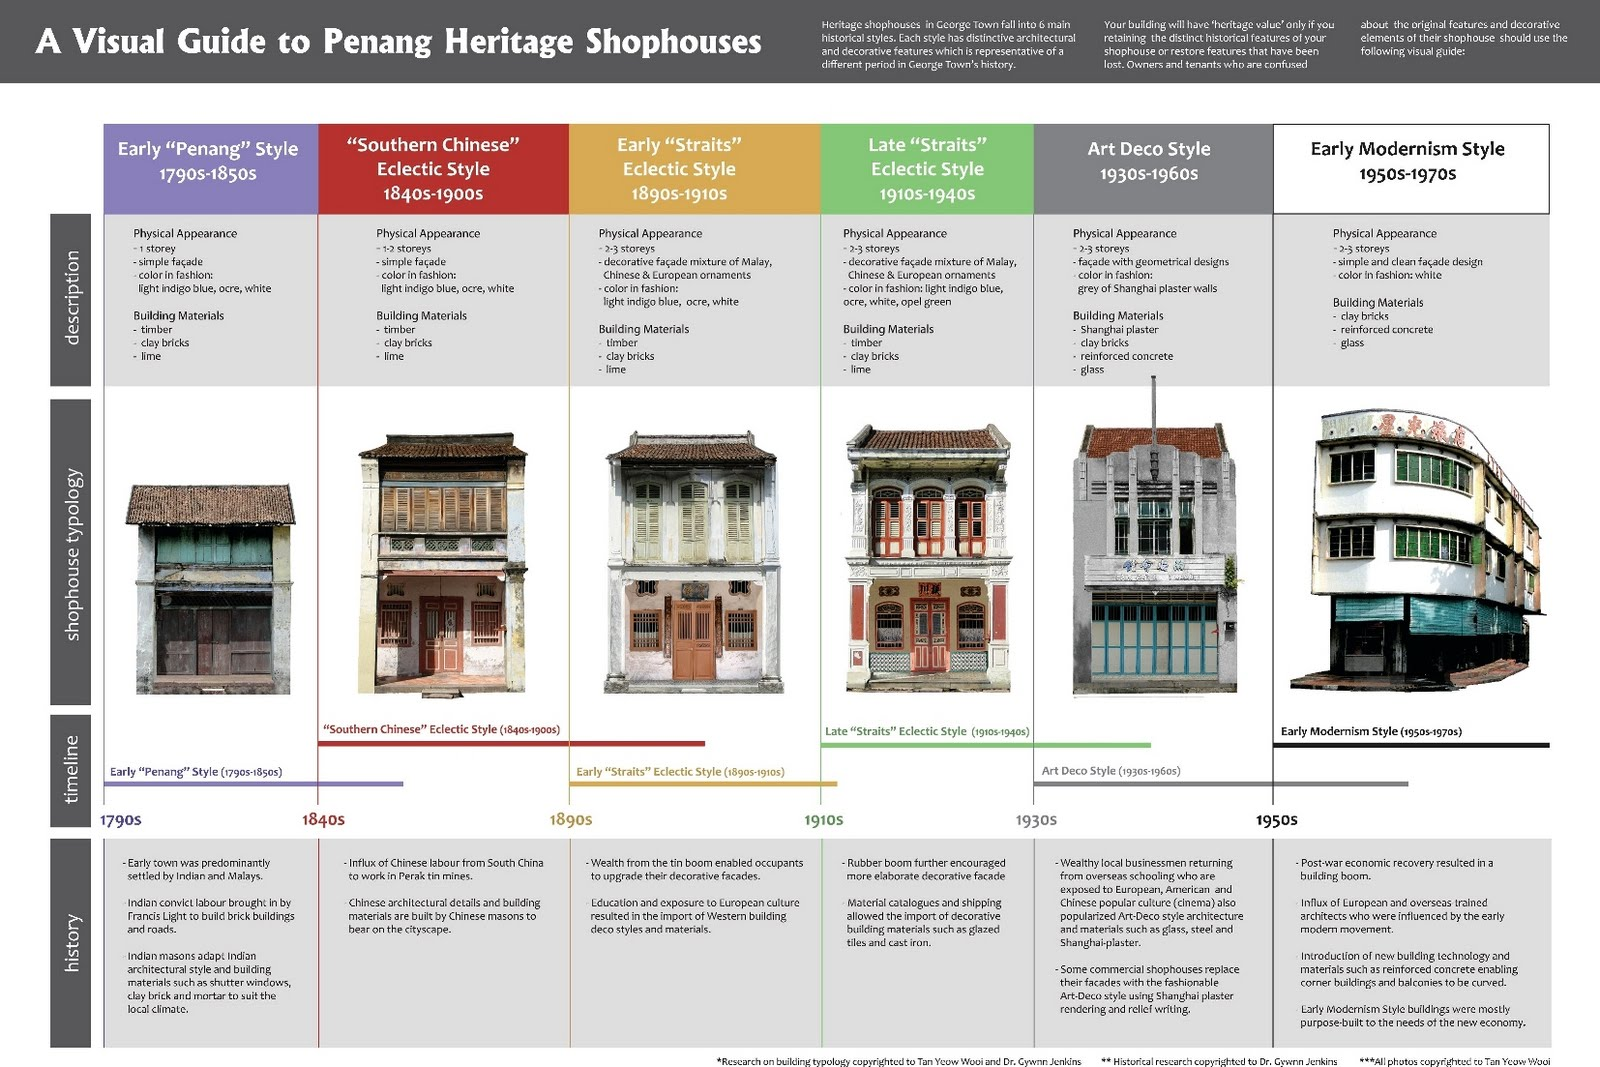 Local ecologist penang shophouse internal courtyard for Architectural home styles guide